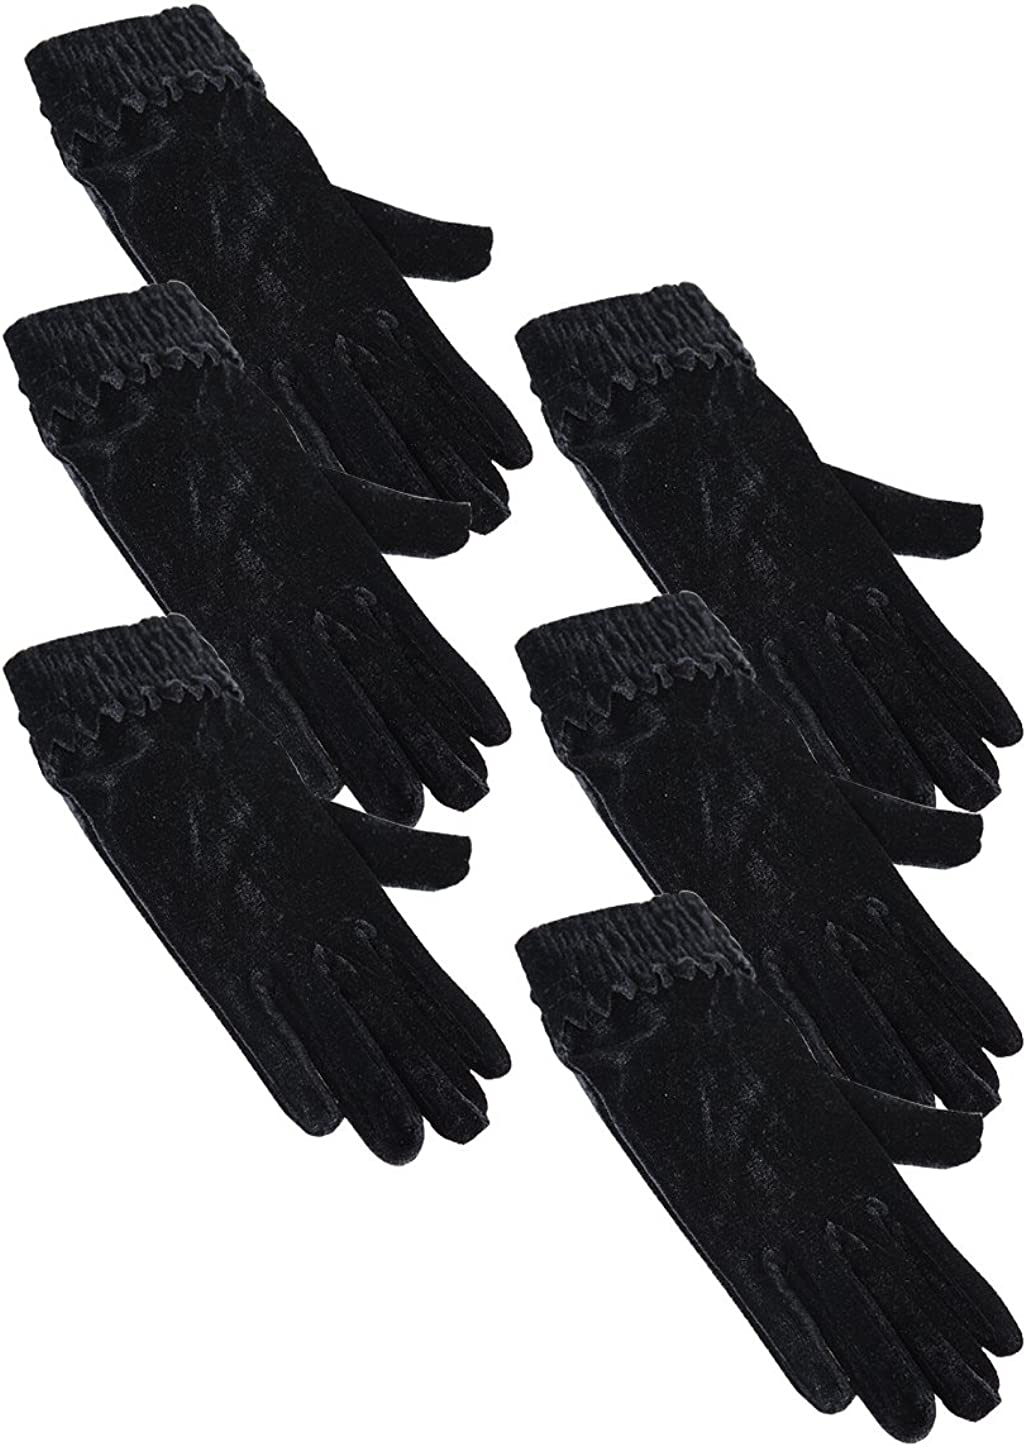 uxcell Women Cold Proof Warm Windproof Elastic Wrist Stylish Flannelette Gloves 6 Packs